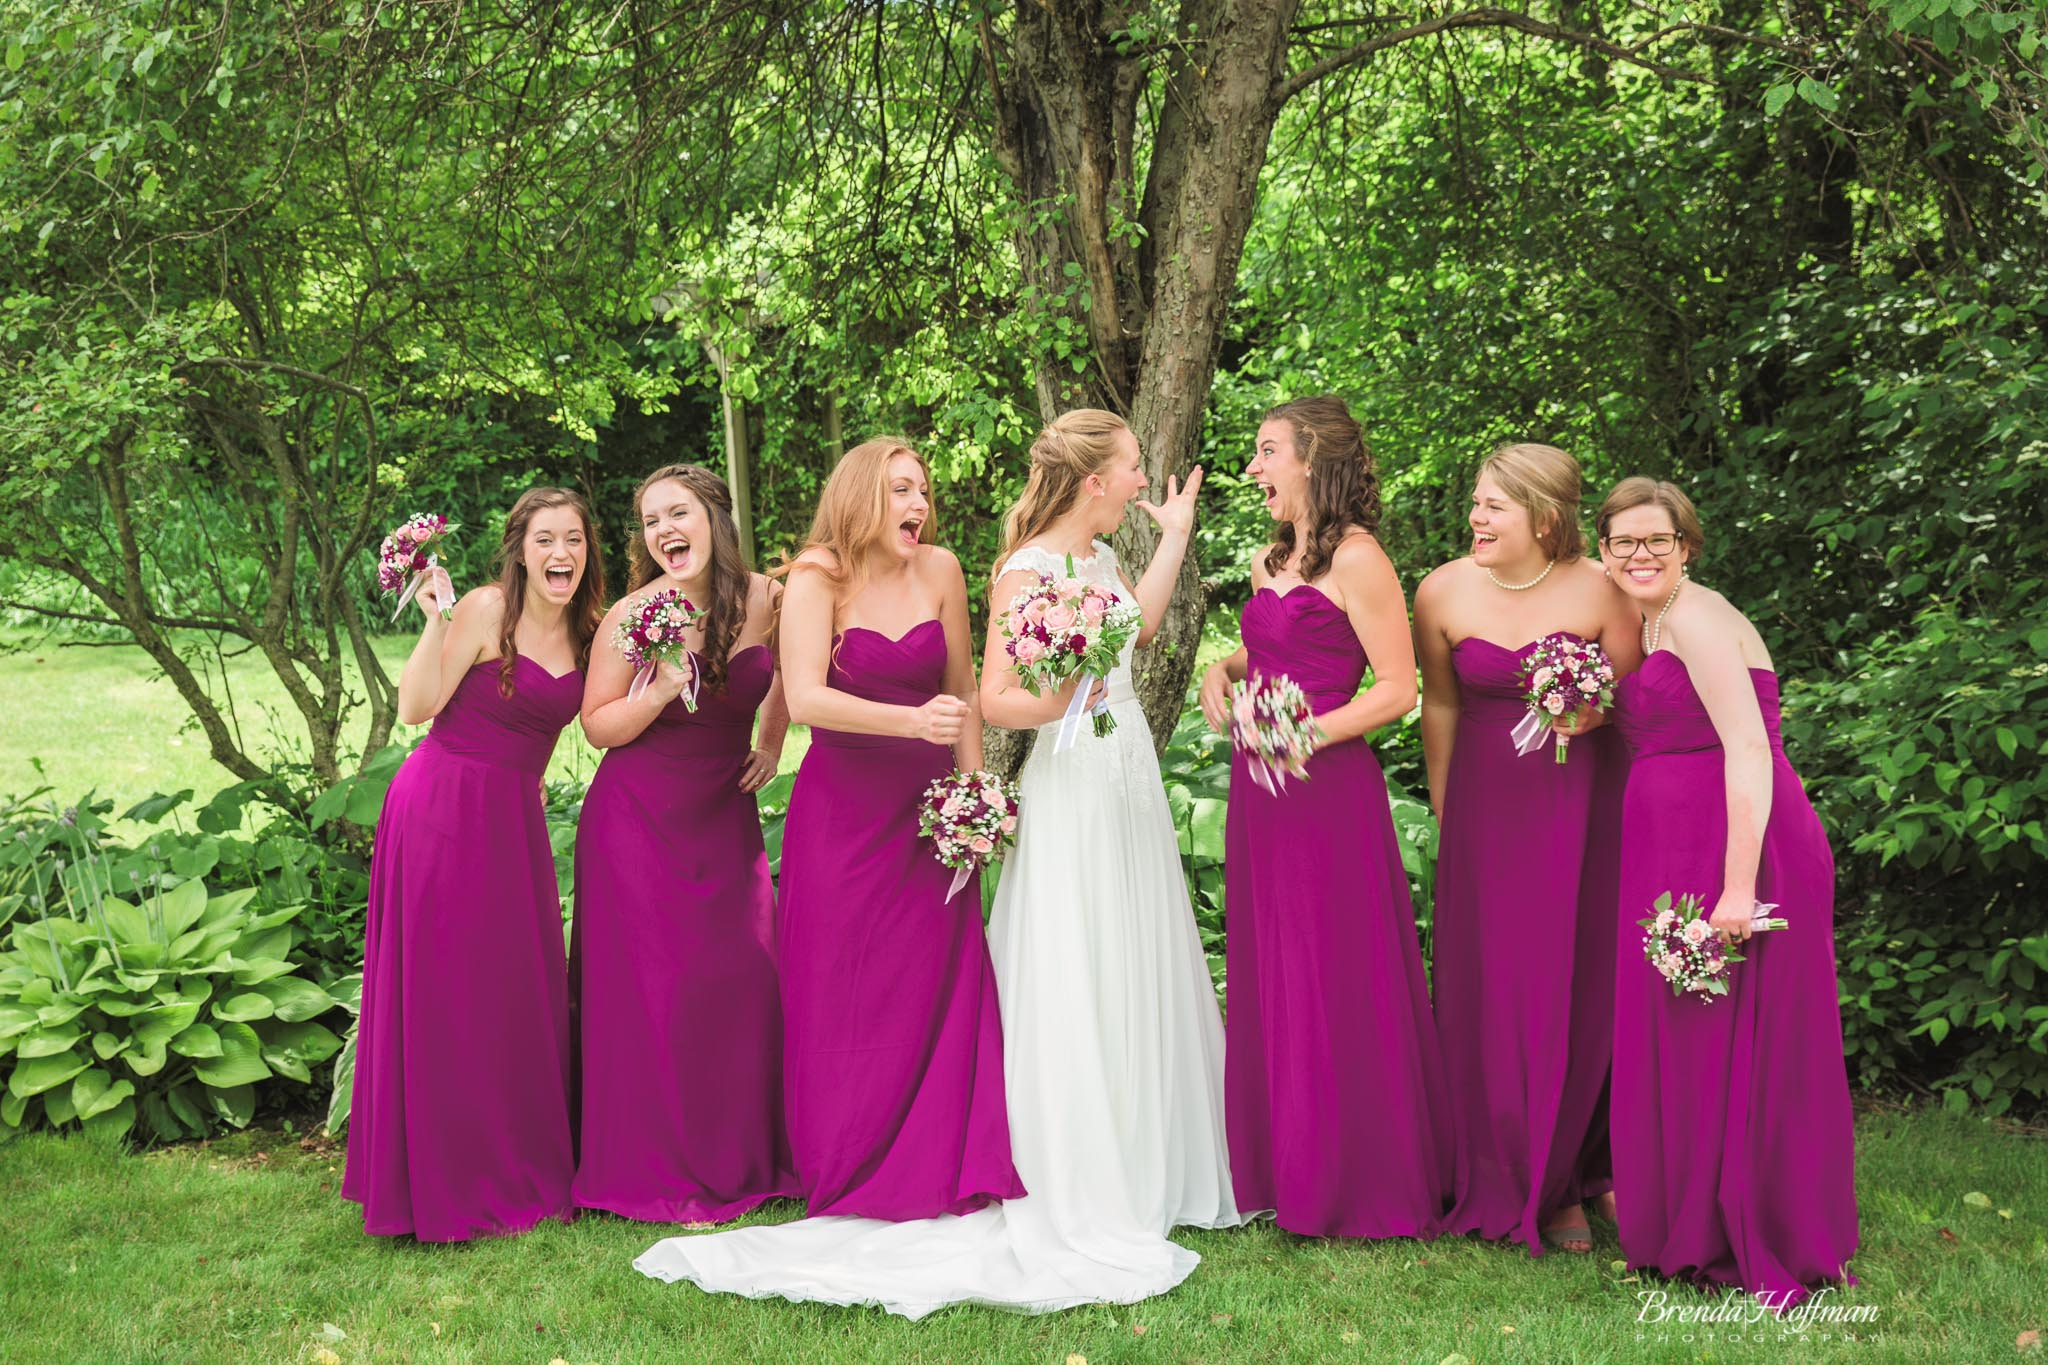 How to choose bridesmaids dresses brenda hoffman photography this could allow you to pick out designer brands at an affordable price also your bridesmaids wont be stuck with a dress that they will never wear again ombrellifo Gallery